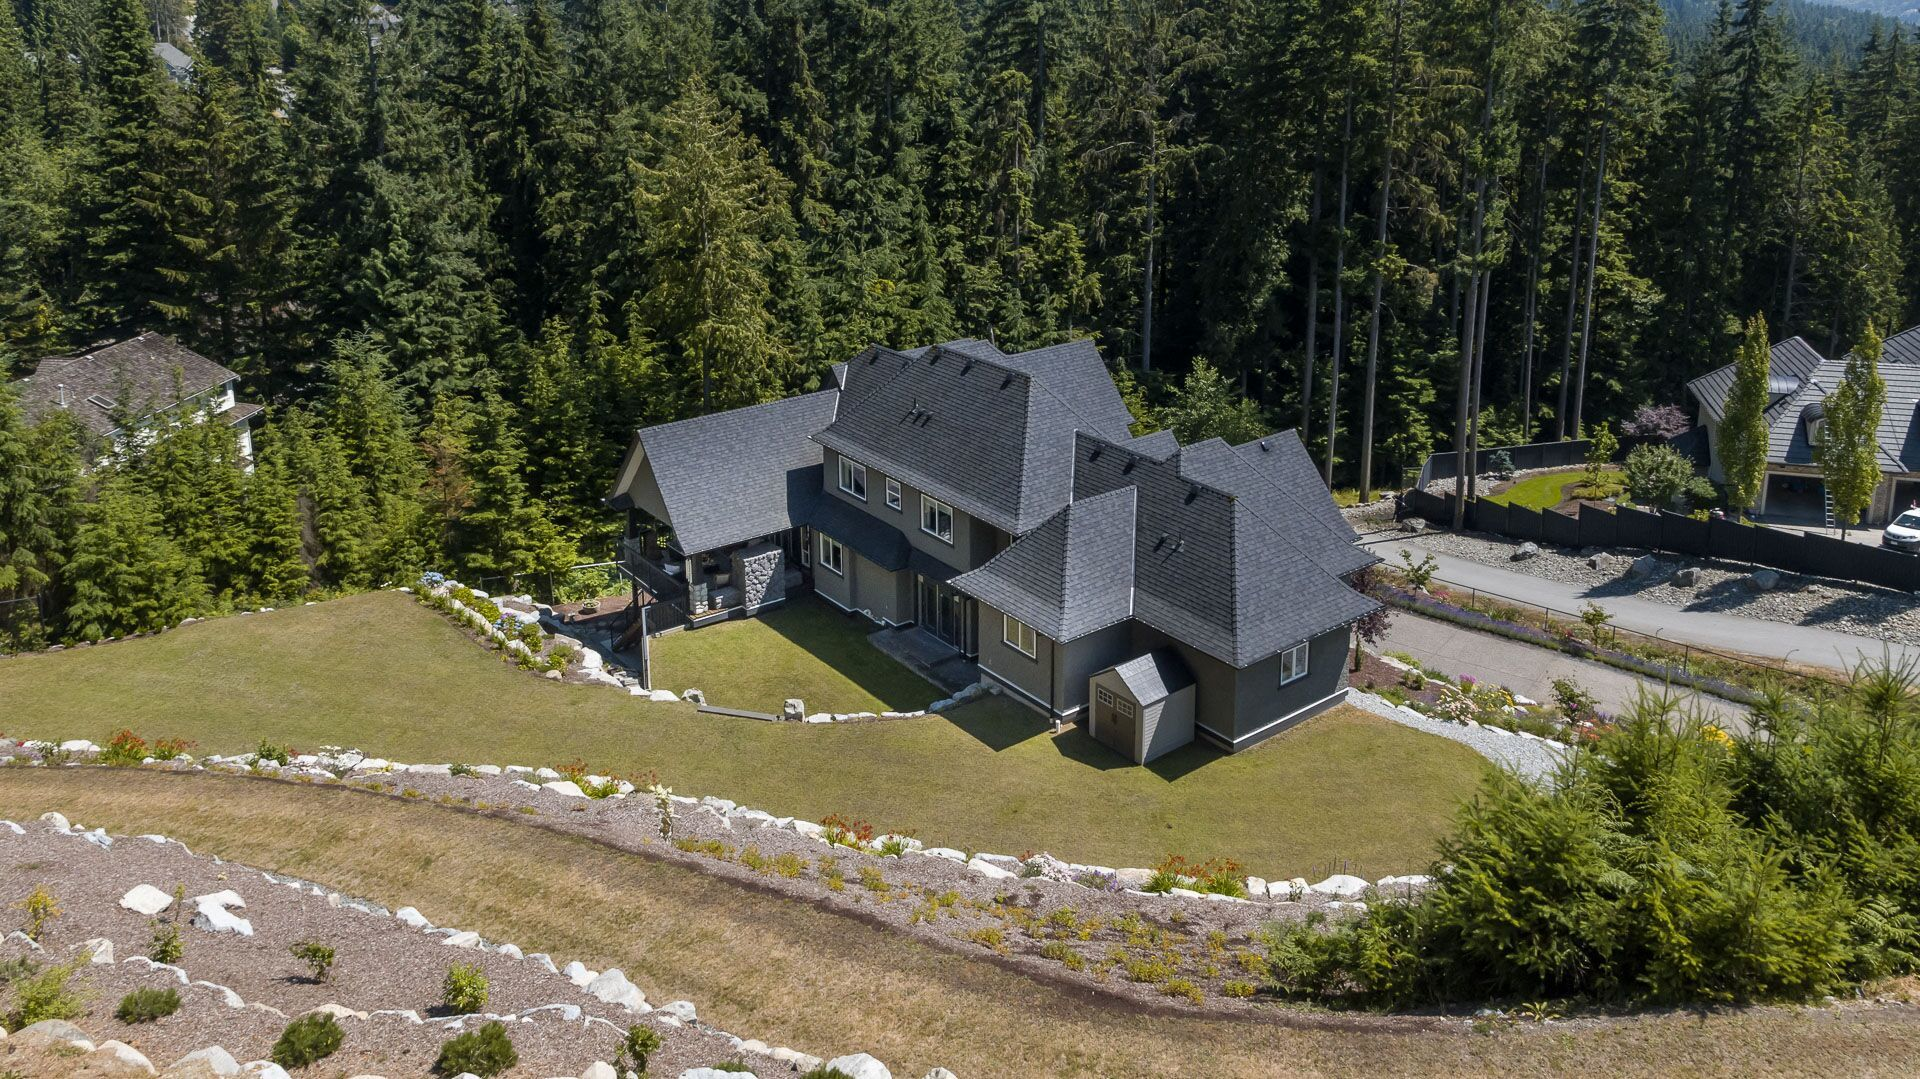 m-cpskt8 at 1403 Crystal Creek Drive, Anmore, Port Moody